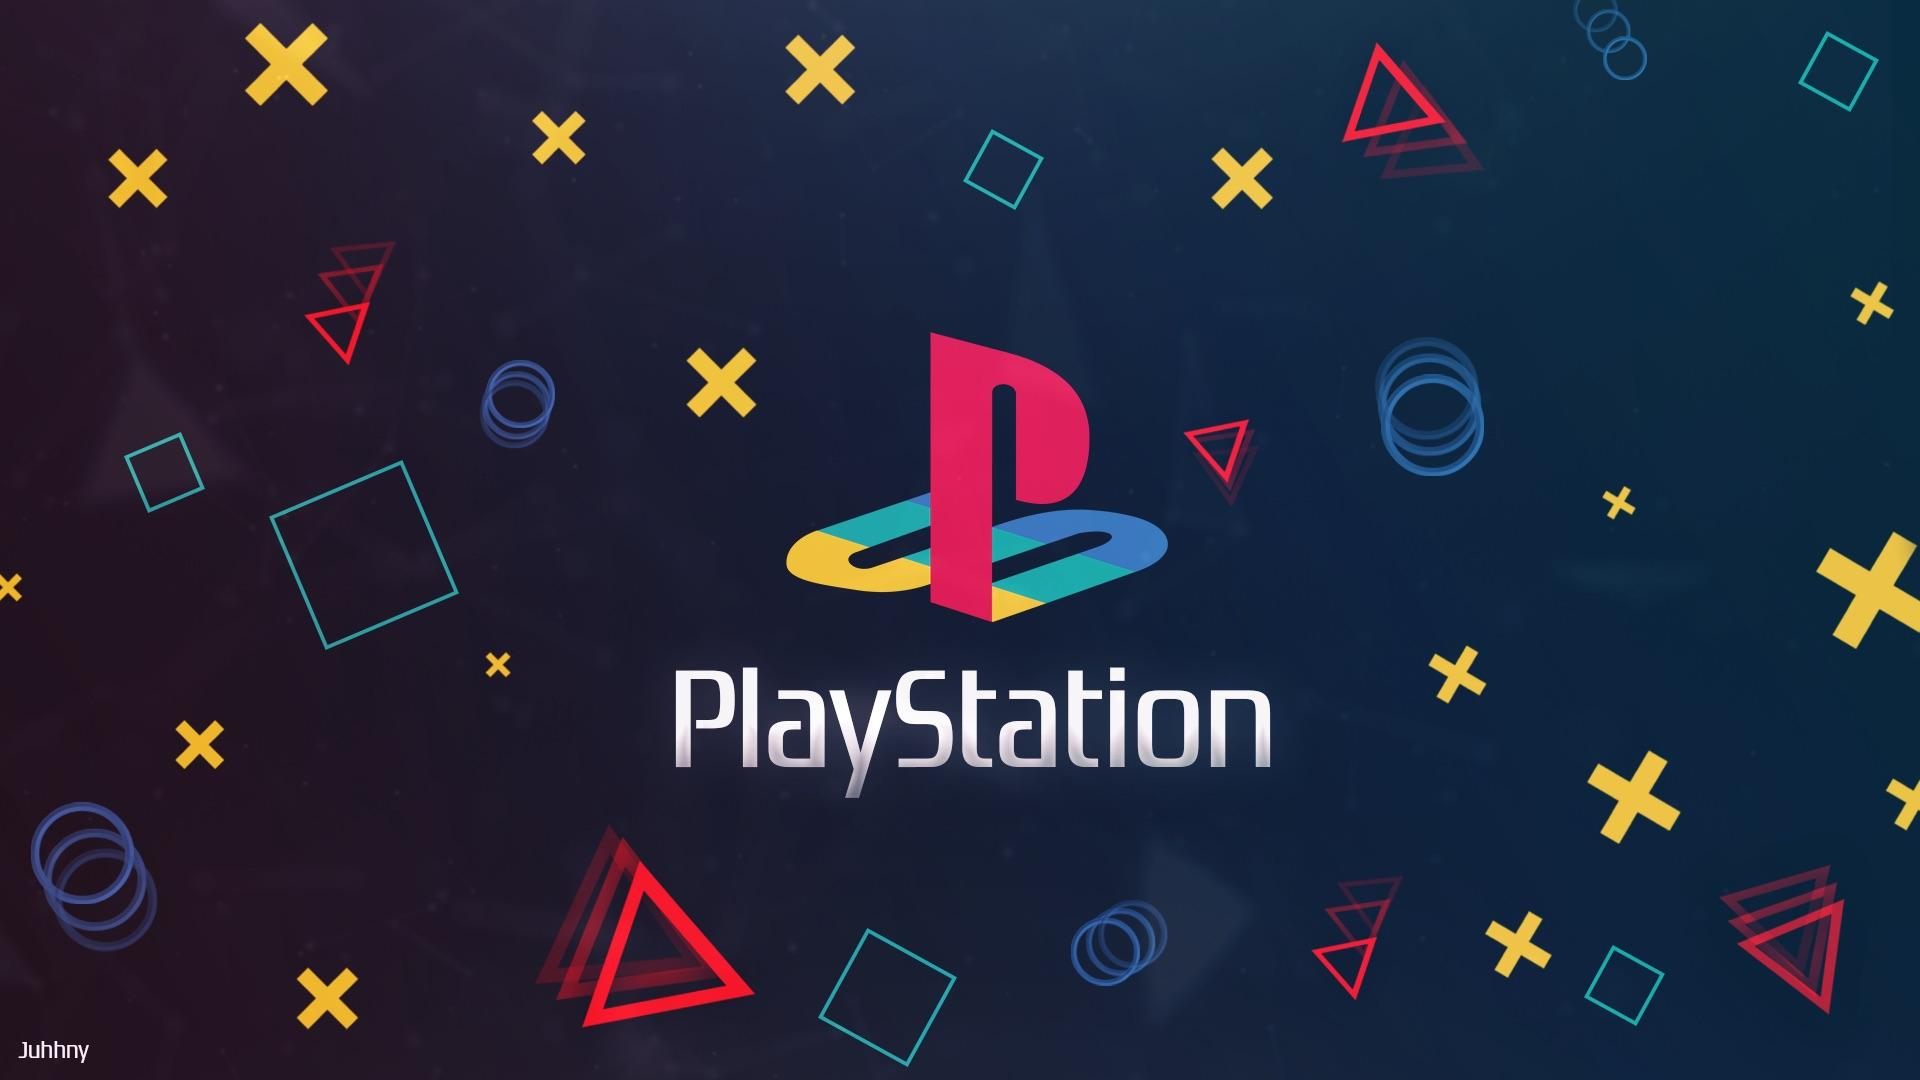 Playstation 5 Wallpapers Top Free Playstation 5 Backgrounds Wallpaperaccess